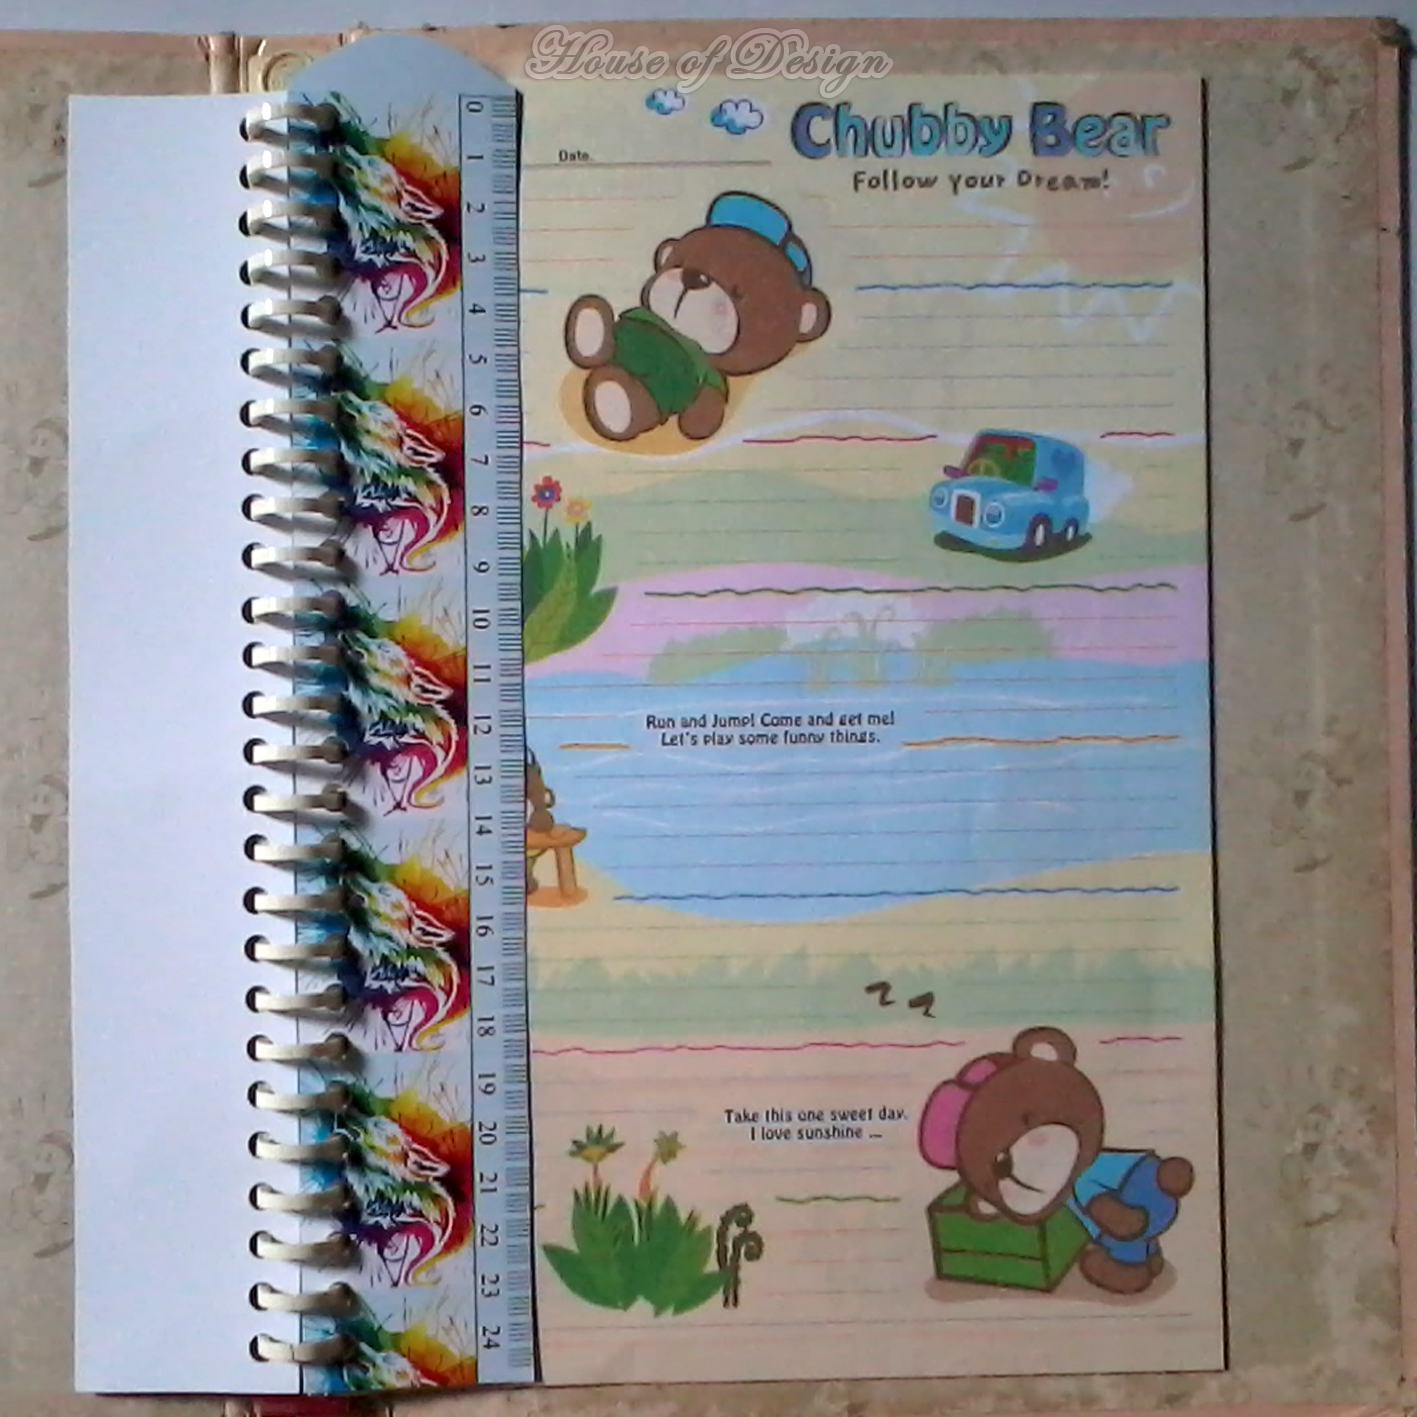 RULER DIVIDER BINDER CUSTOM, PENGGARIS BINDER CUSTOM, PENGGARIS BINDER 26 RING, PENGGARIS BINDER UKURAN B5, PENGGARIS BINDER ART, PENGGARIS BINDER SRIGALA